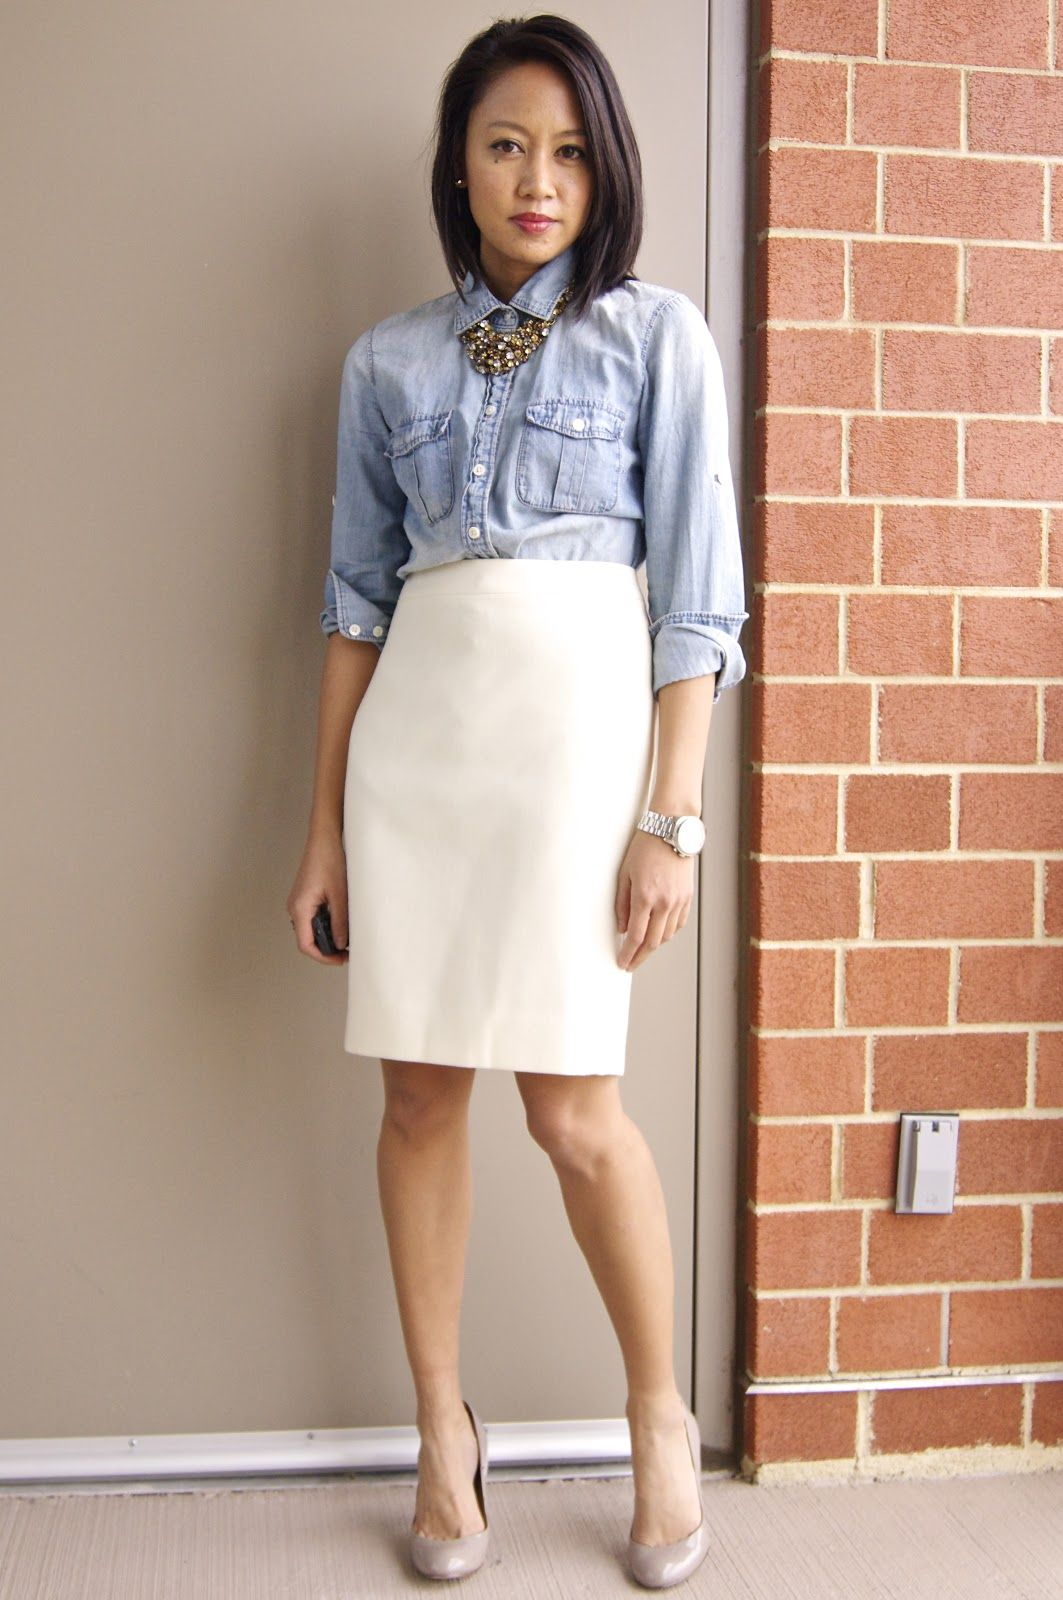 Cassie - pencil skirt option. One skirt styled 5 different ways ...